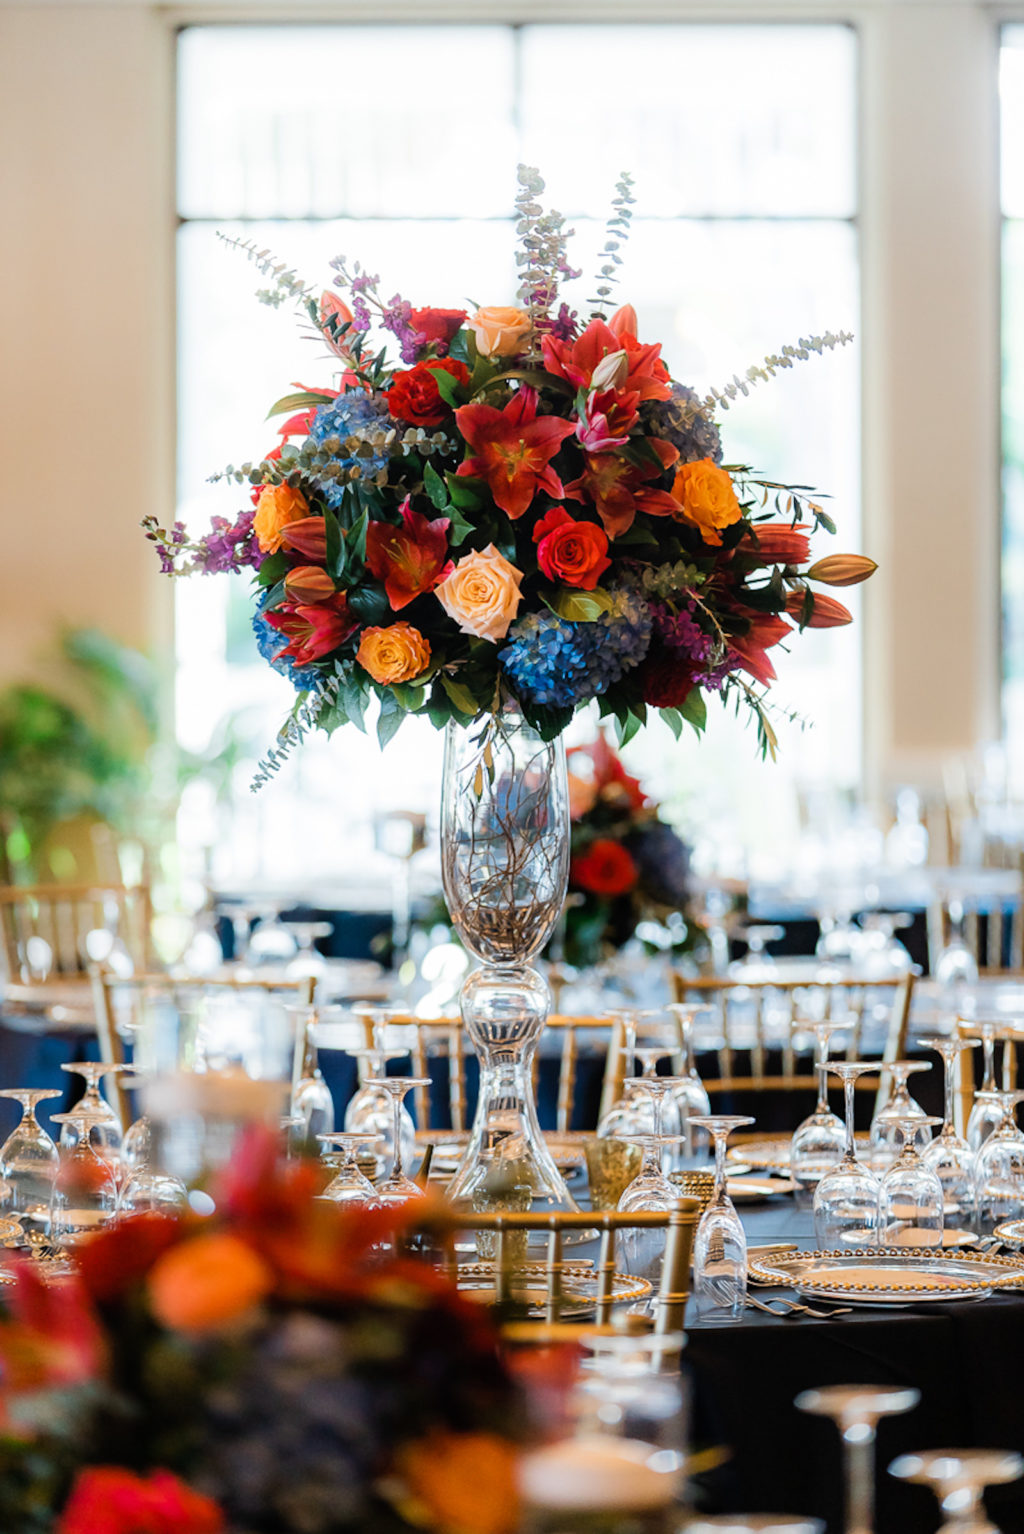 Elegant Ballroom Wedding Reception Decor, Silver Chiavari Chairs, Round Tables with Navy Blue Table Linens, Jewel Tone Tall Floral Centerpieces, Blue, Pink, Red, Orange Flowers | Tampa Wedding Venue The Resort at Longboat Key Club